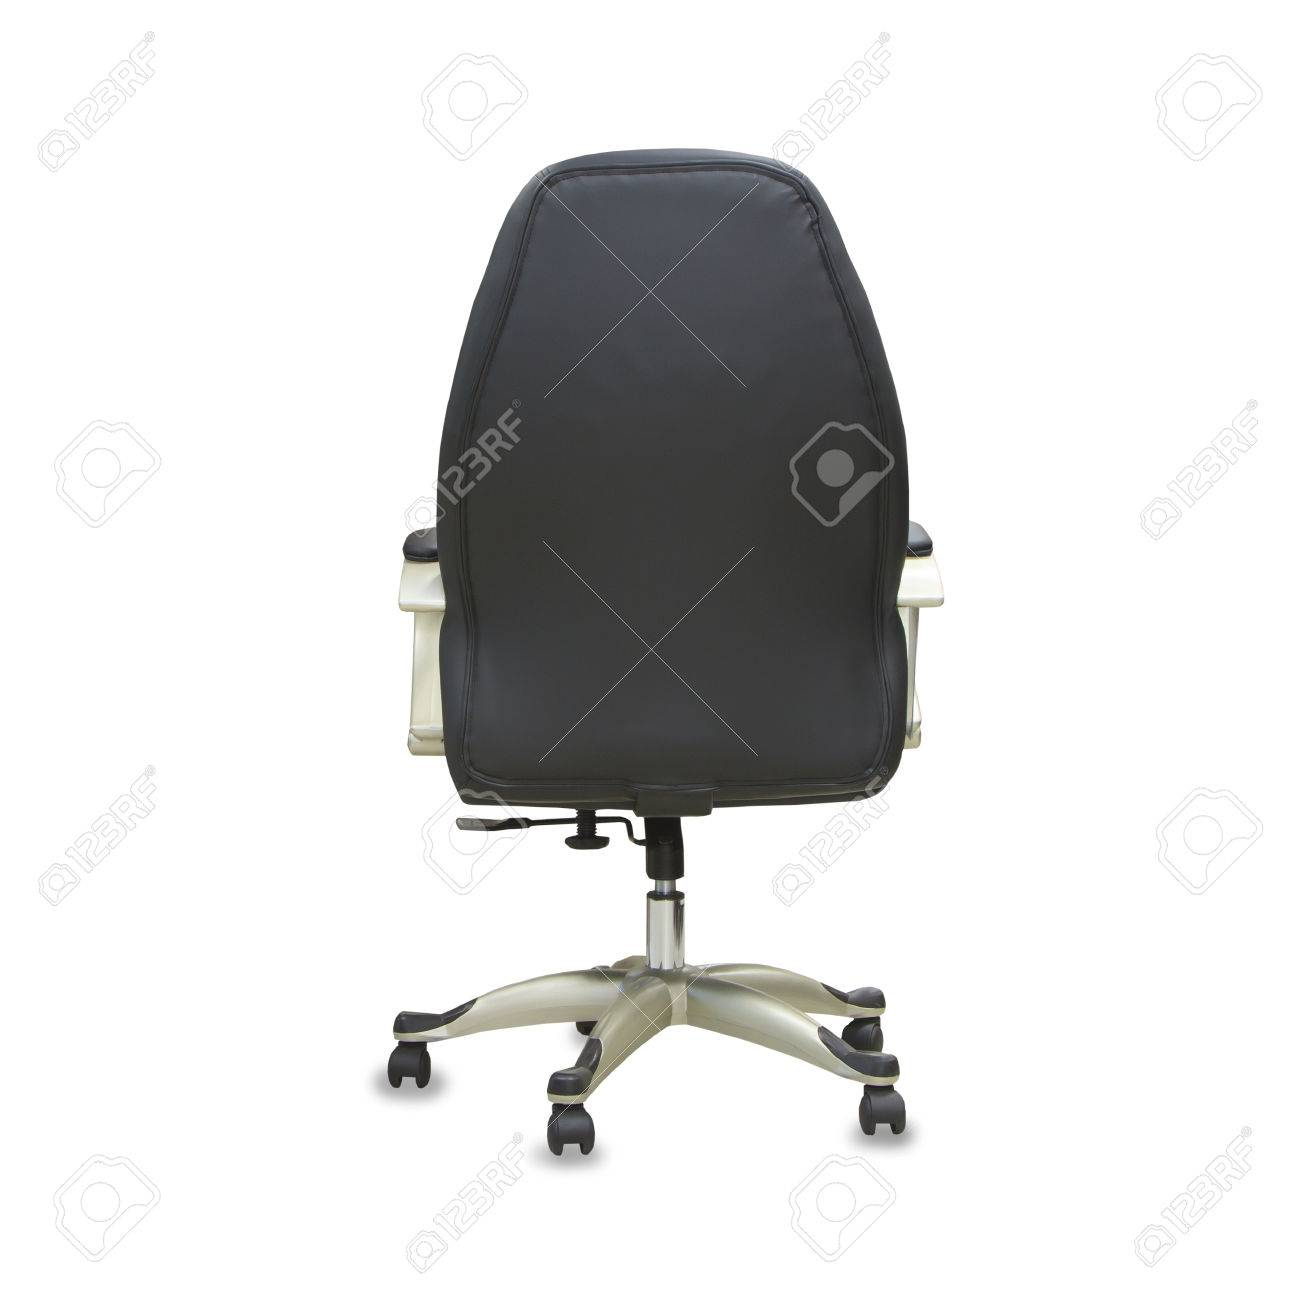 Office chair back view - Back View Of Modern Office Chair From Black Leather Isolated Stock Photo 80420928